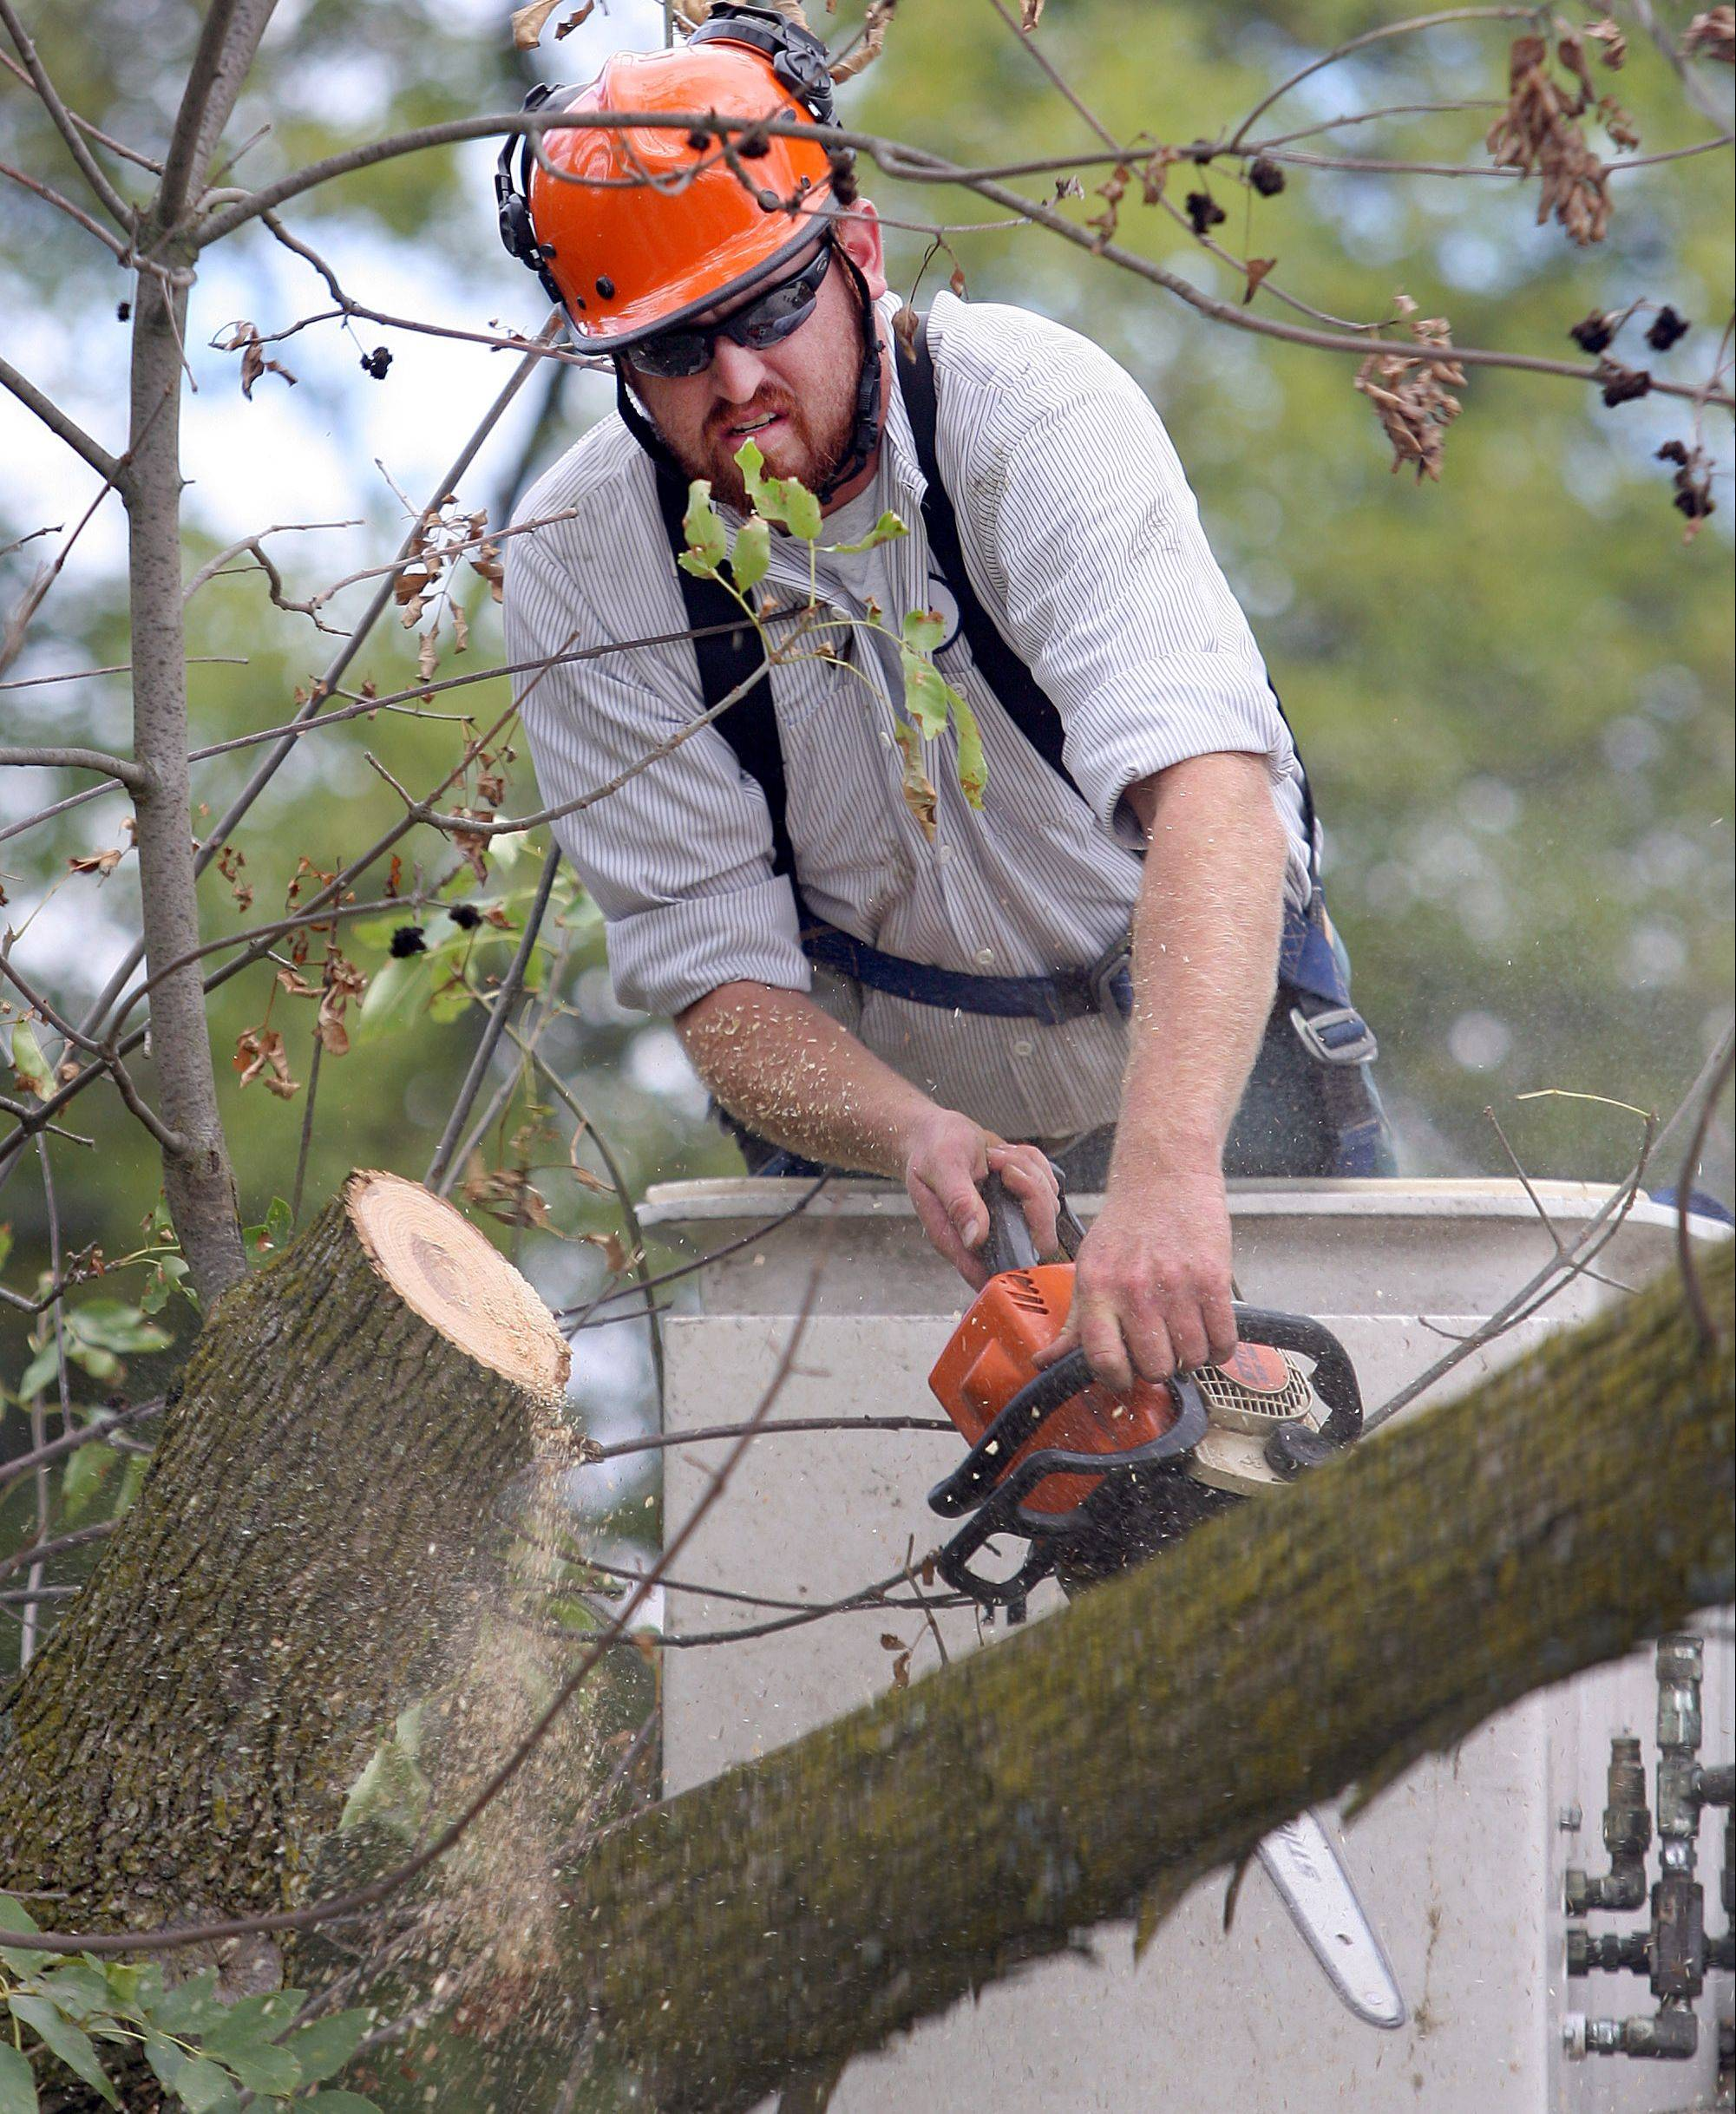 An estimated 350 to 400 ash trees have been removed in Libertyville since the emerald ash borer was confirmed in June 2010.